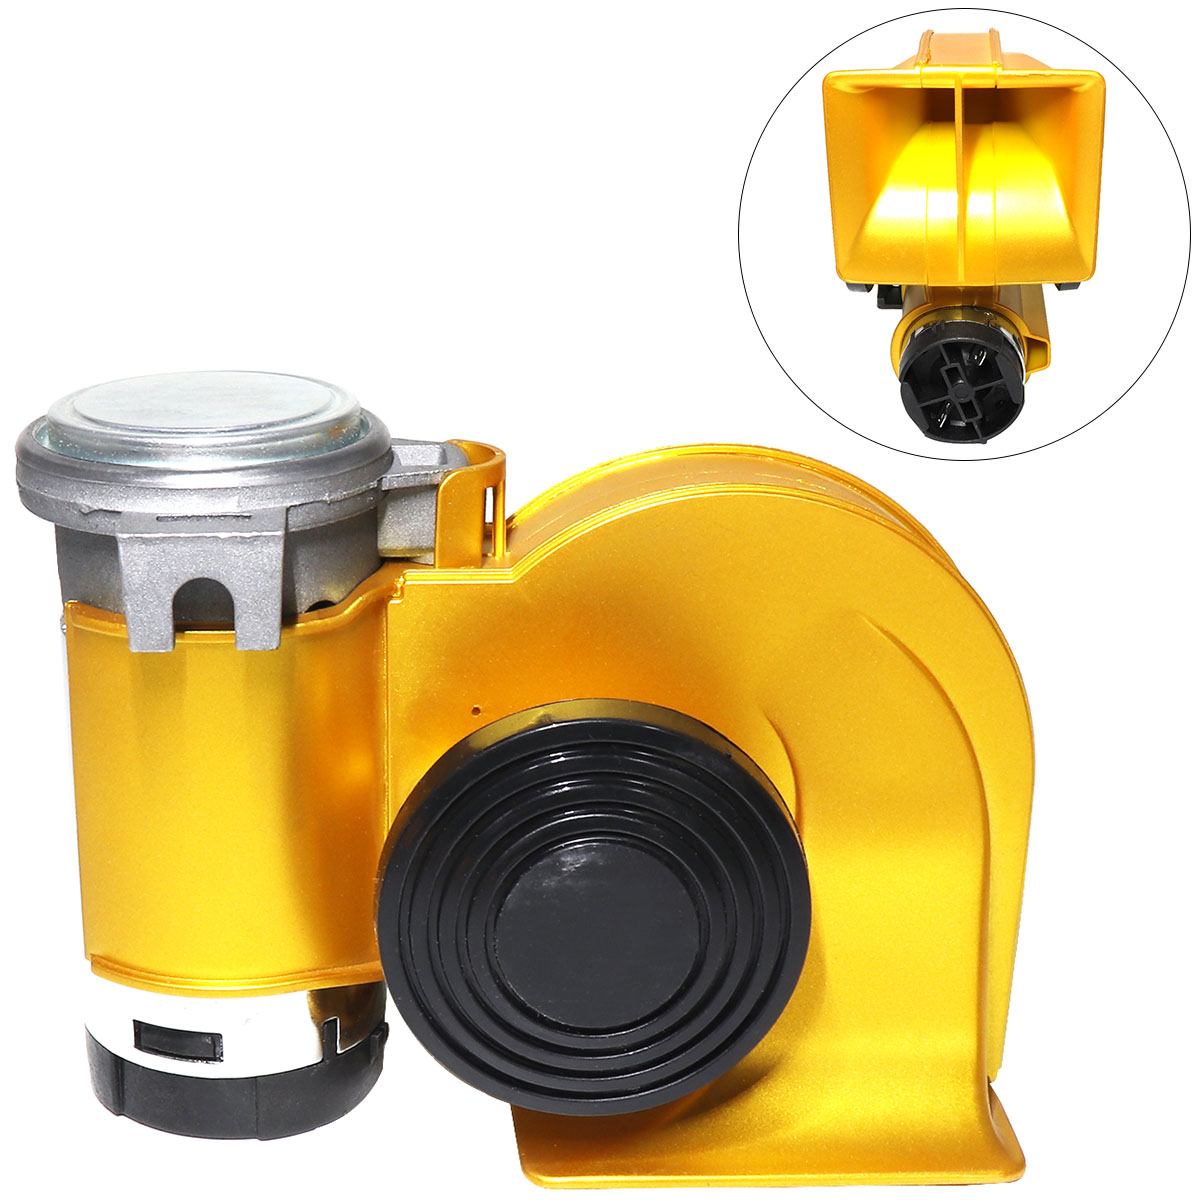 12V 139dB Car Air Horn Snail Compact Dual Multi-tone & Claxon Horns Gold for Vehicle Motorcycle Yacht Boat SUV